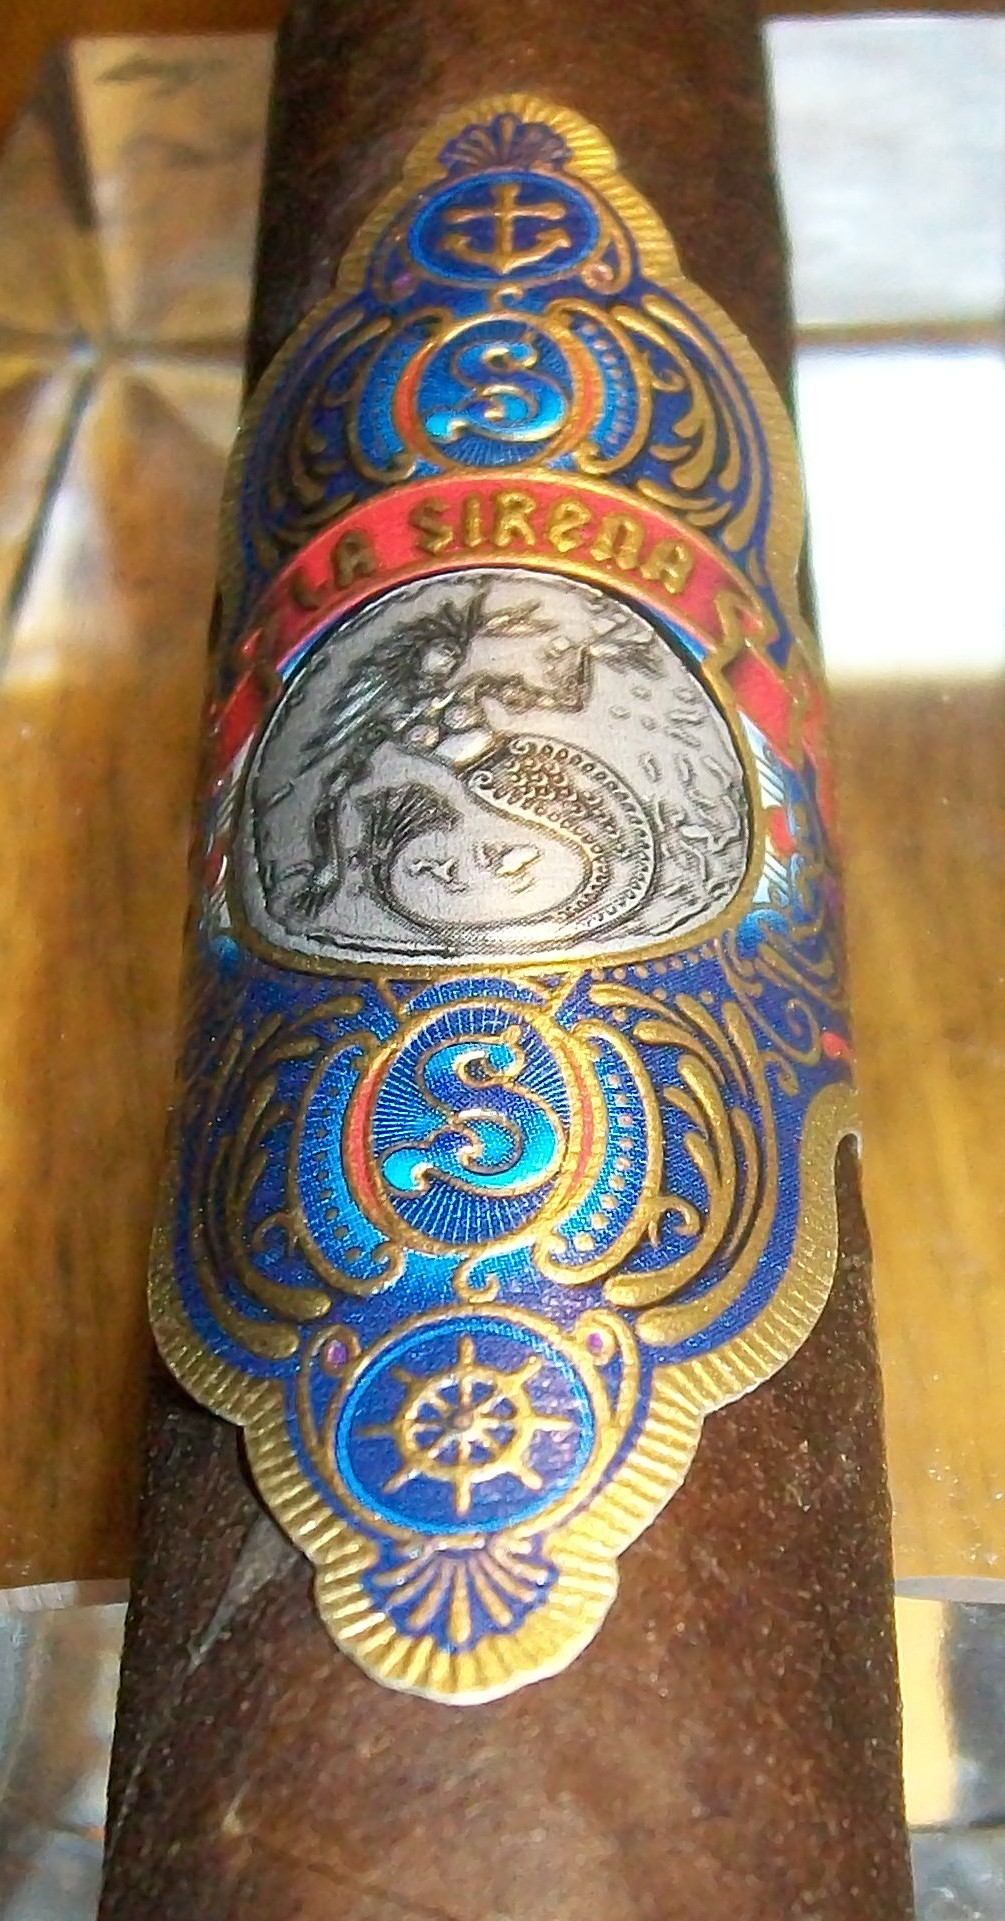 Cigar Review: La Sirena